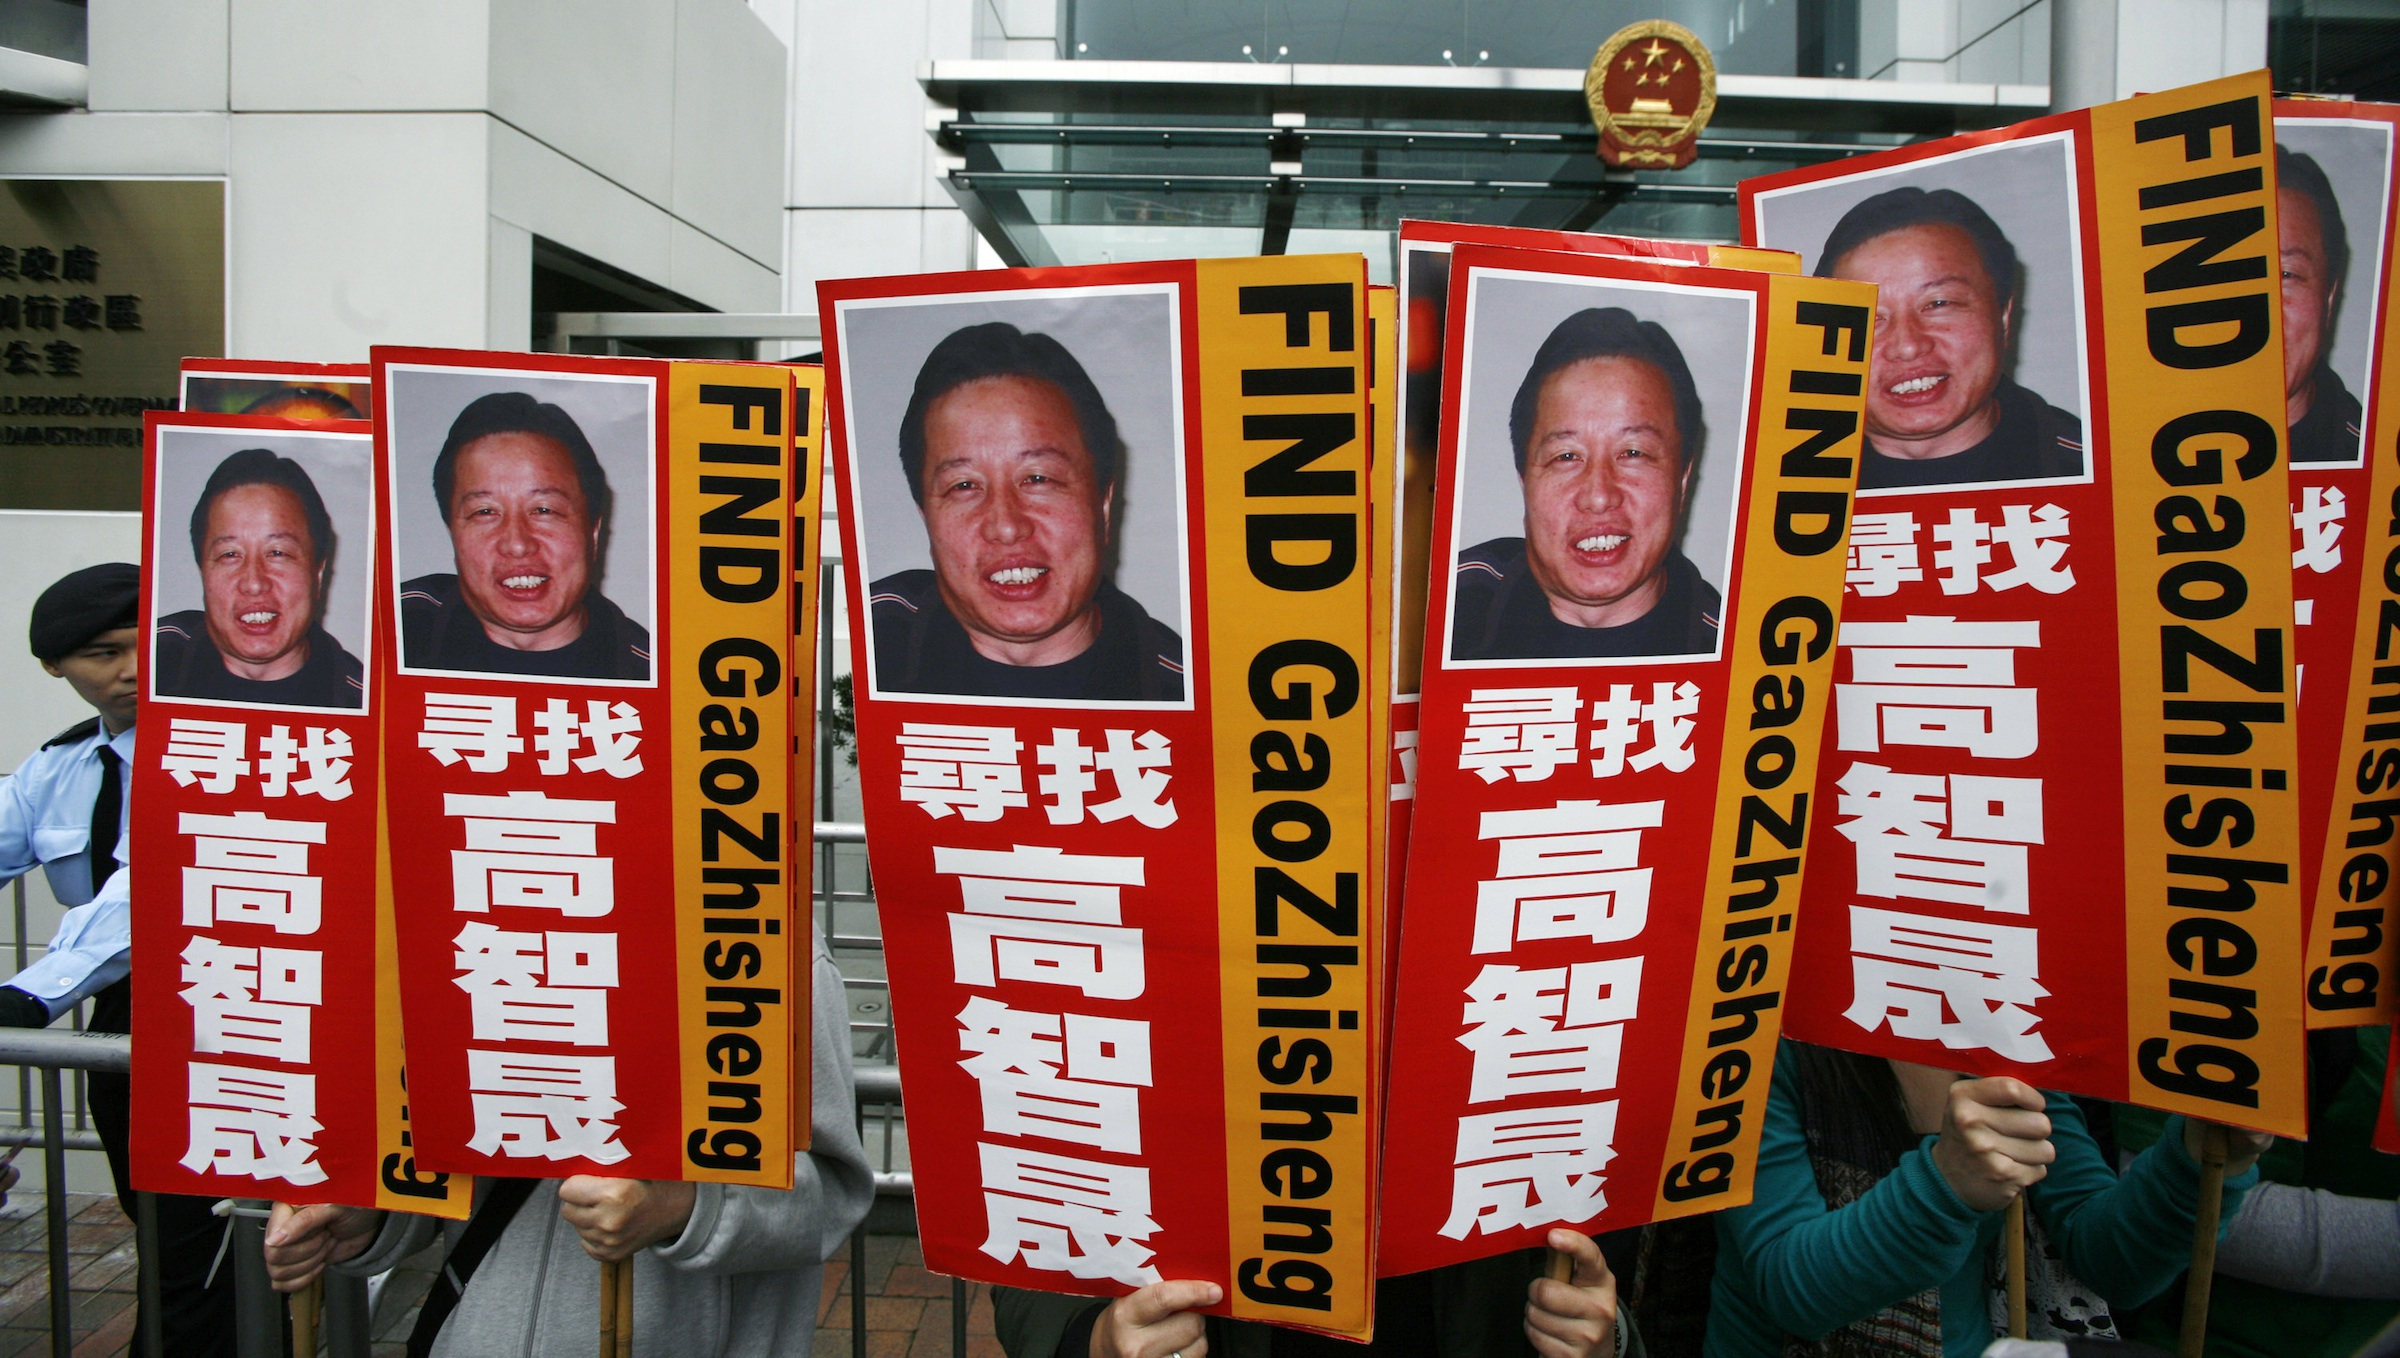 "A policeman stands guard as protesters carrying portraits of one of China's most prominent dissidents, Gao Zhisheng, demonstrate outside a Chinese liaison office in Hong Kong February 4, 2010. Gao, an outspoken lawyer who took on sensitive cases that riled China's ruling Communist Party, has been missing for one year. Chinese characters read ""Look for Gao Zhisheng""."